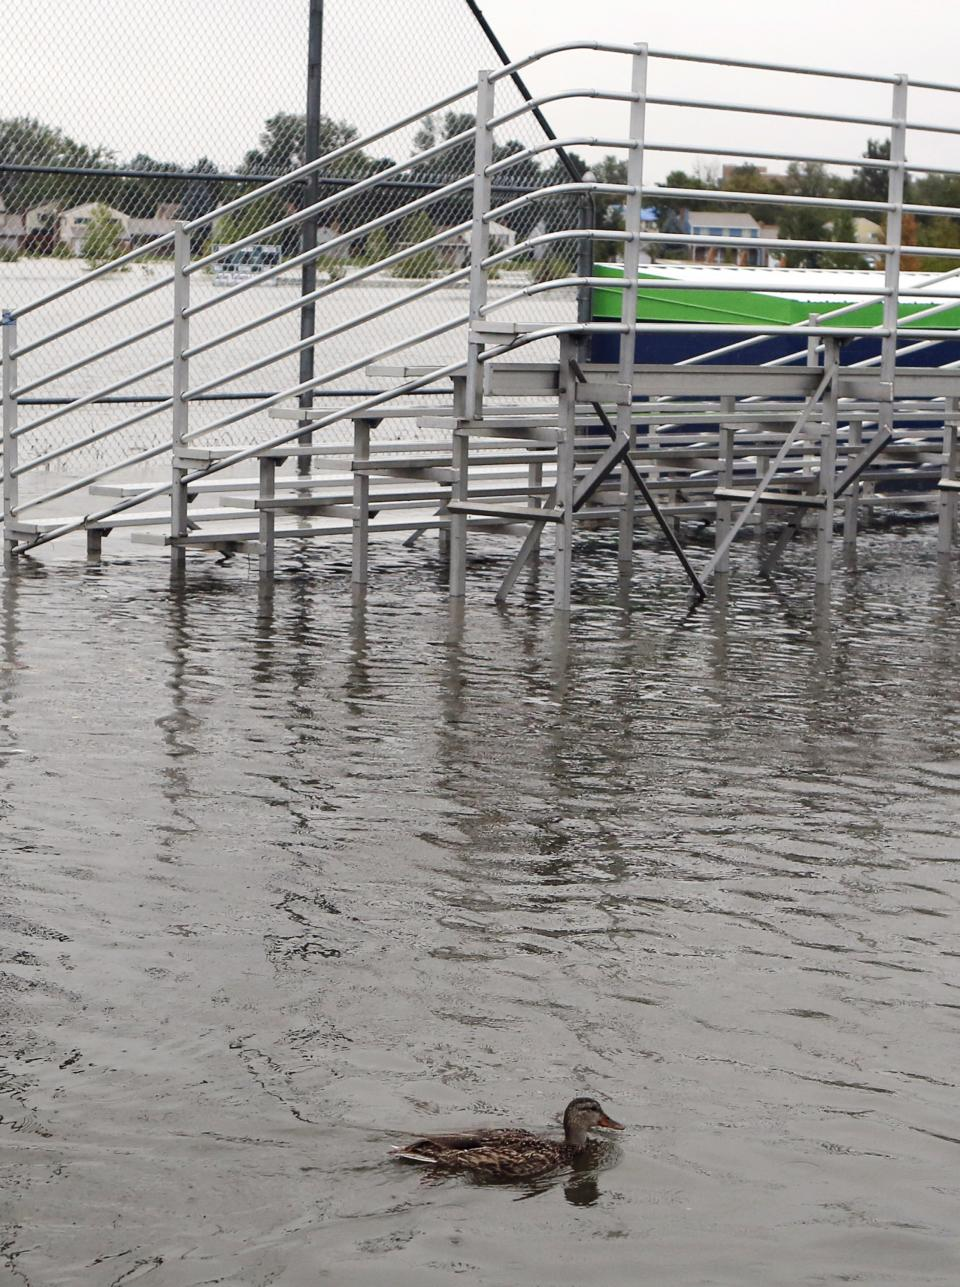 A duck swims near bleachers at Utah Park on Thursday, Sept. 12, 2013, in Aurora, Colo. The park was under water Thursday due to flooding. Flash flooding in Colorado has cut off access to towns, closed the University of Colorado in Boulder and left at least three people dead.(AP Photo/Ed Andrieski)